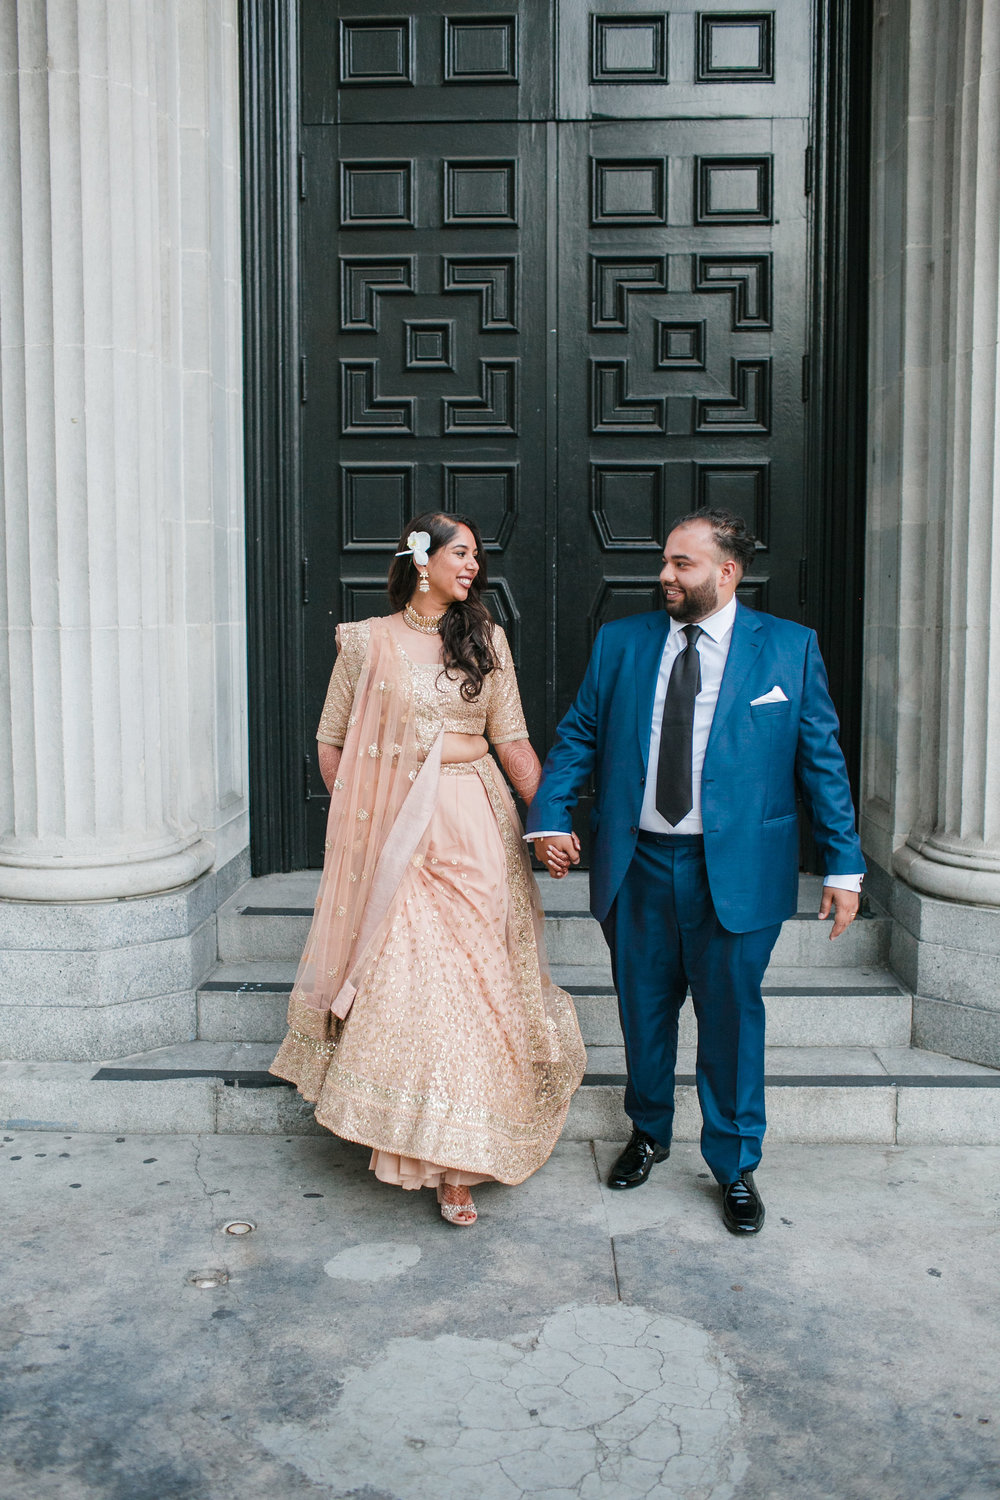 Indian wedding ceremony at the Vibiana, Downtown LA